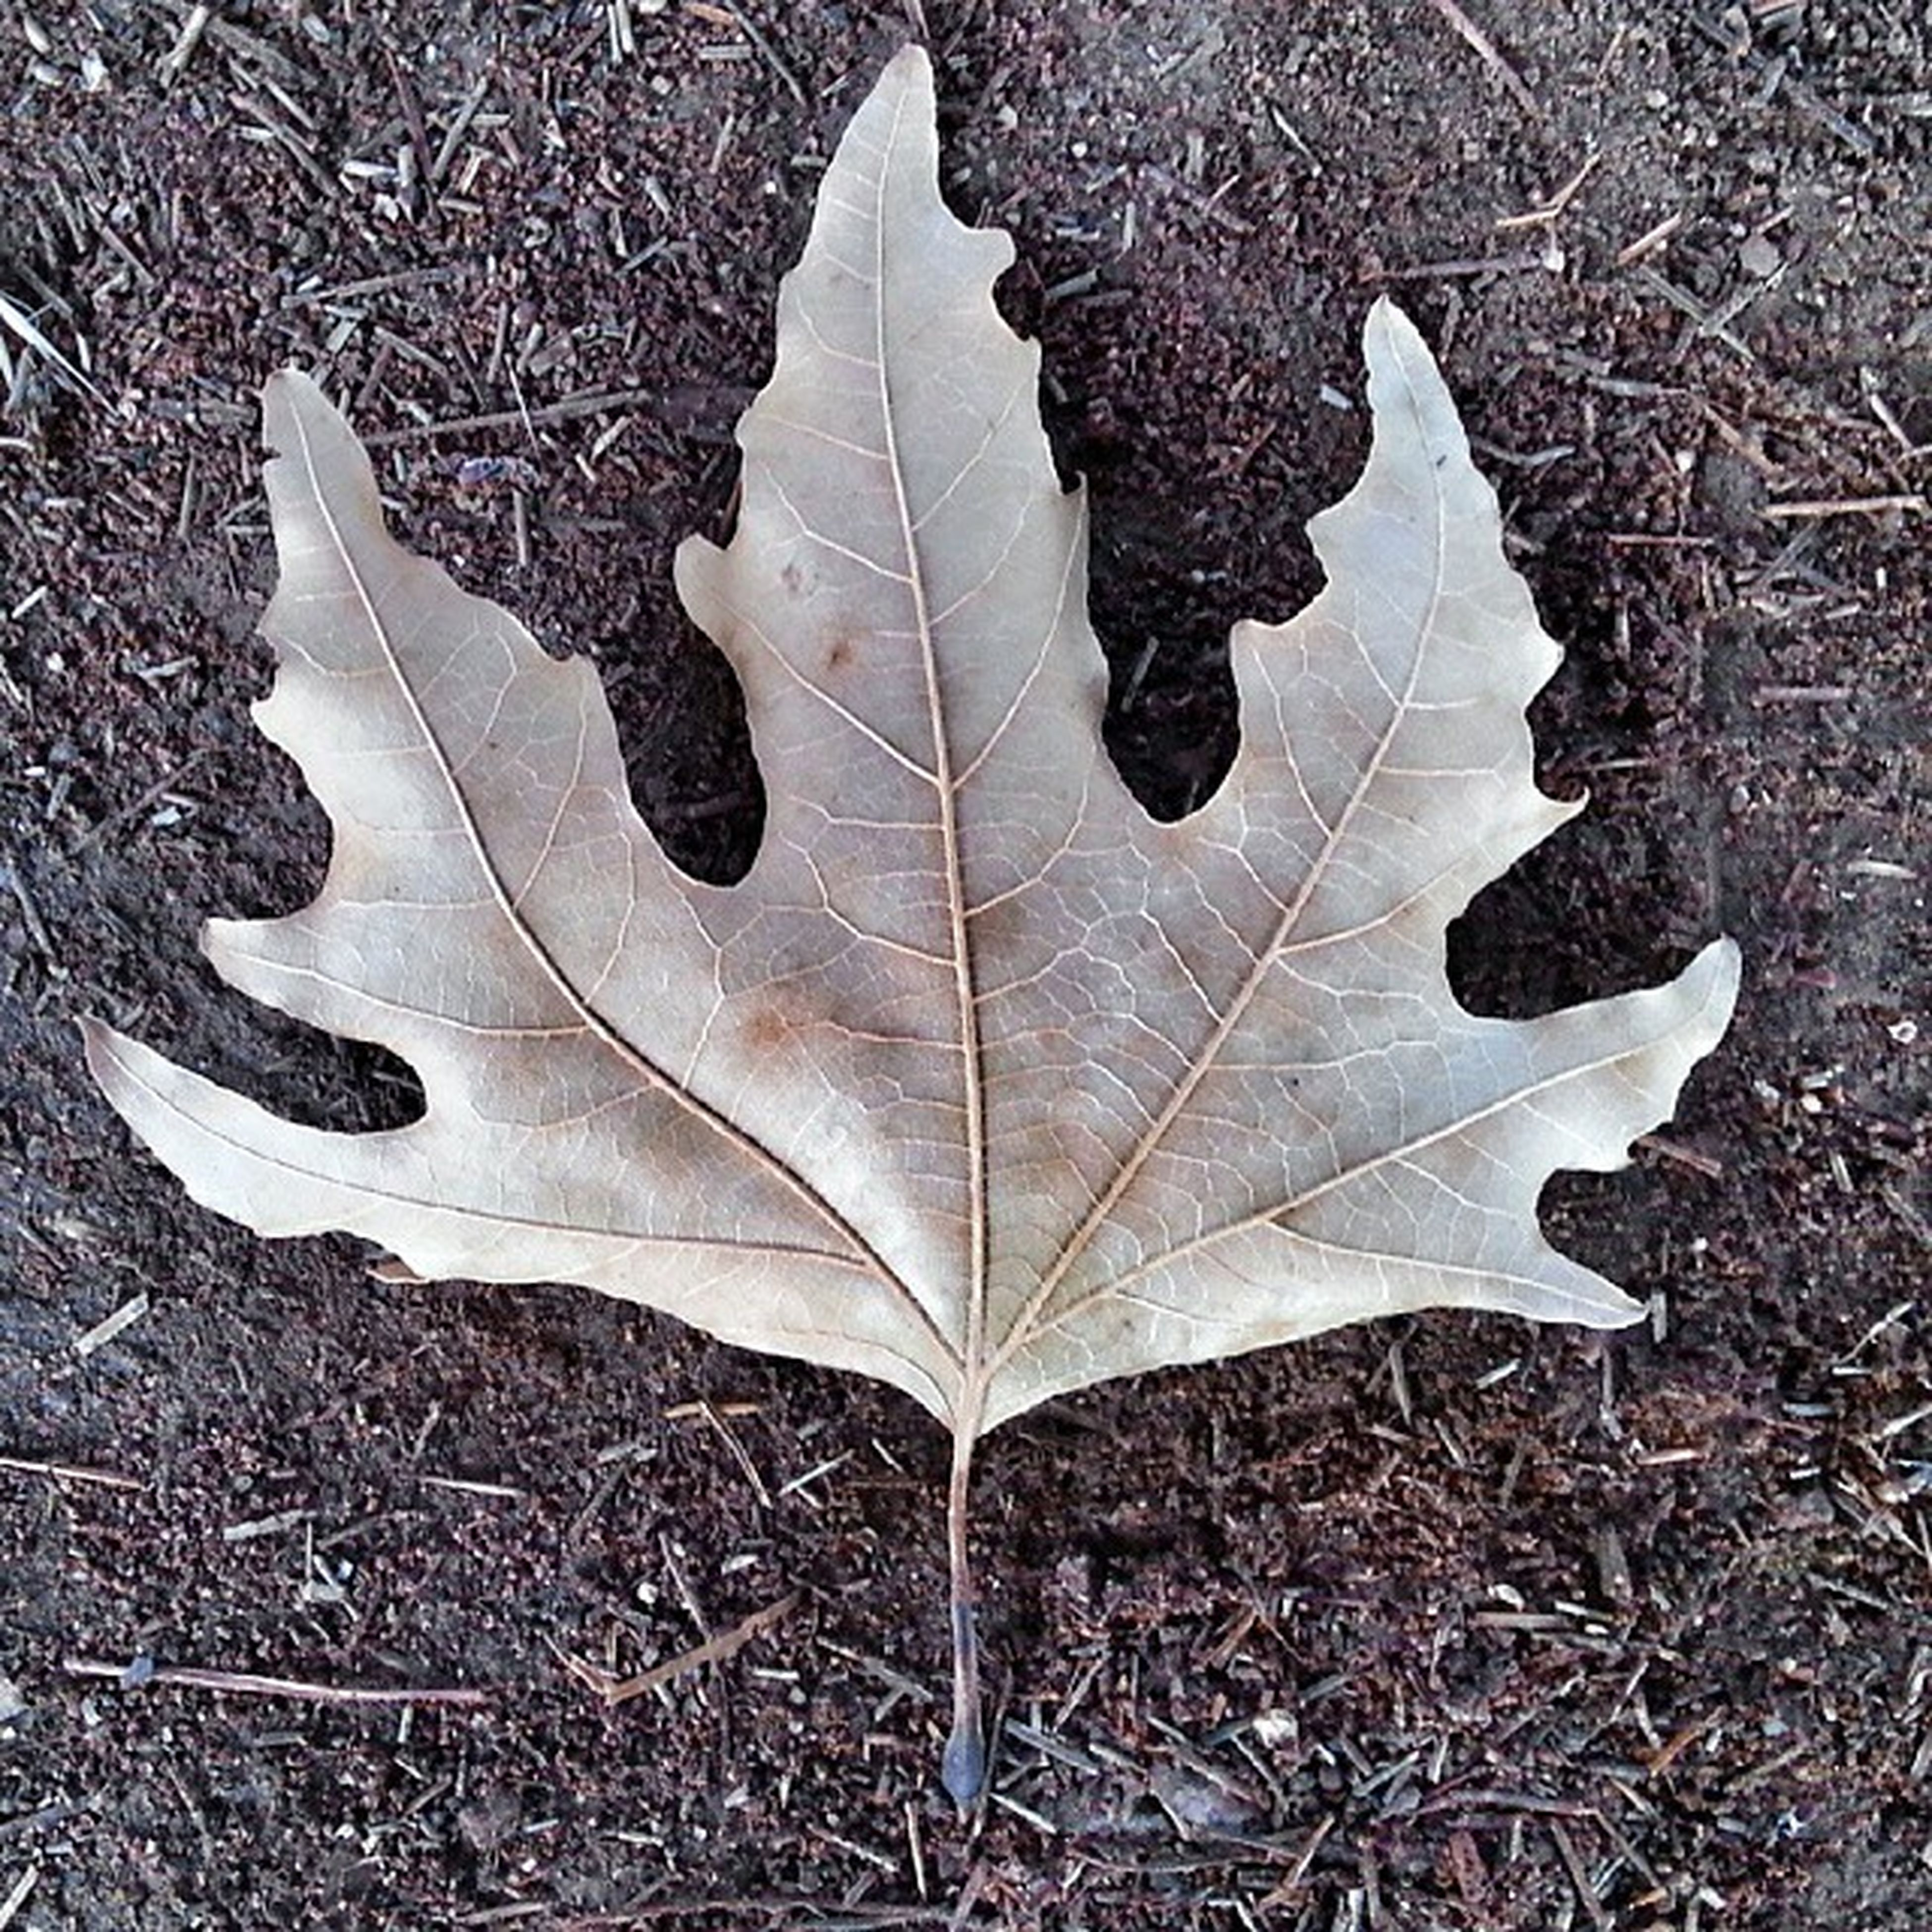 leaf, autumn, dry, change, leaf vein, season, natural pattern, leaves, maple leaf, high angle view, fallen, close-up, nature, pattern, fragility, field, backgrounds, day, natural condition, outdoors